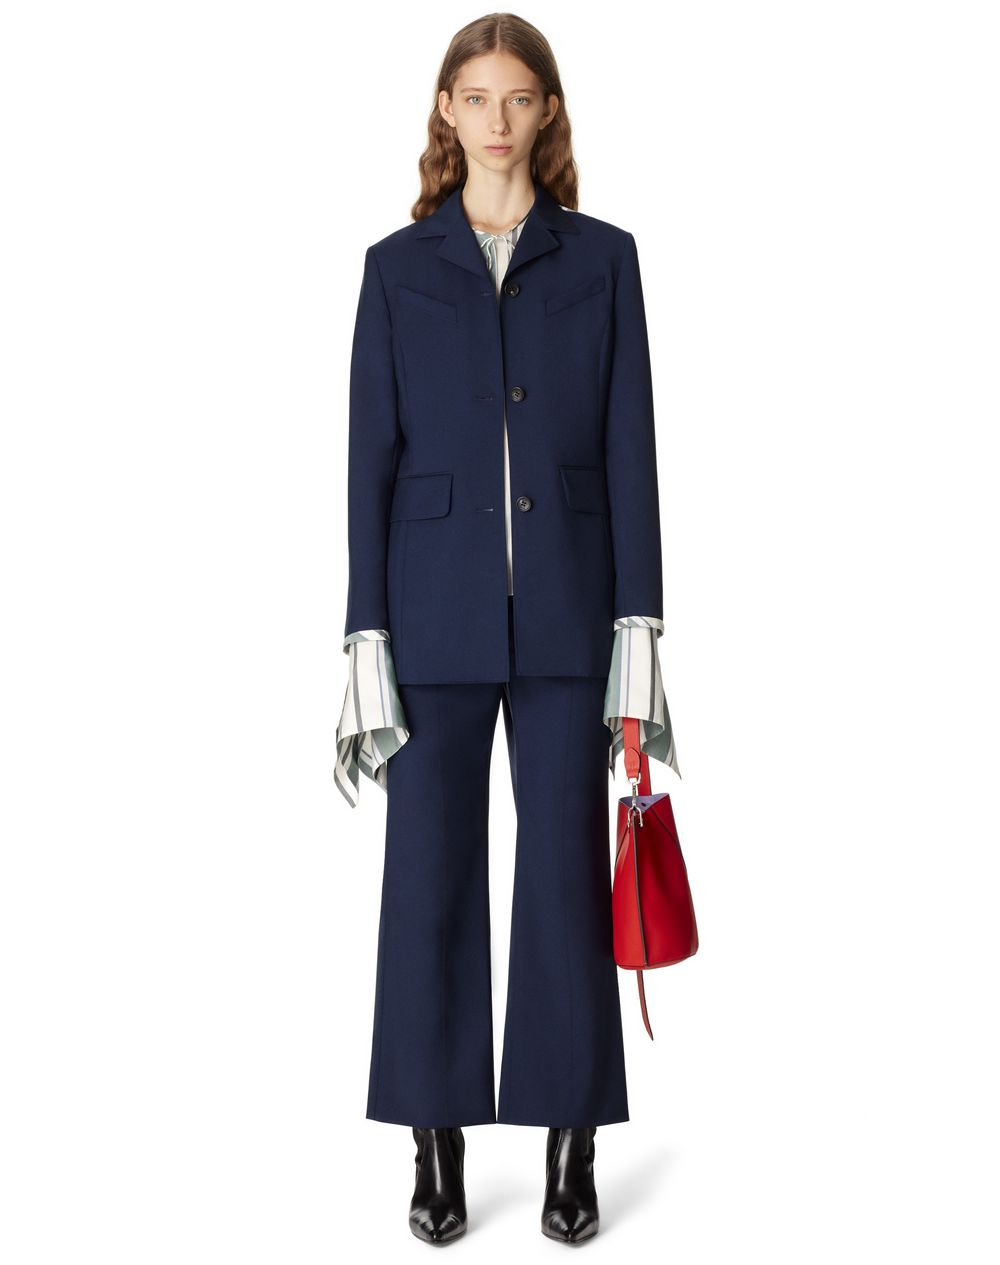 WAISTED TAILORED BICOLOR JACKET IN WOOL AND MOHAIR - Lanvin